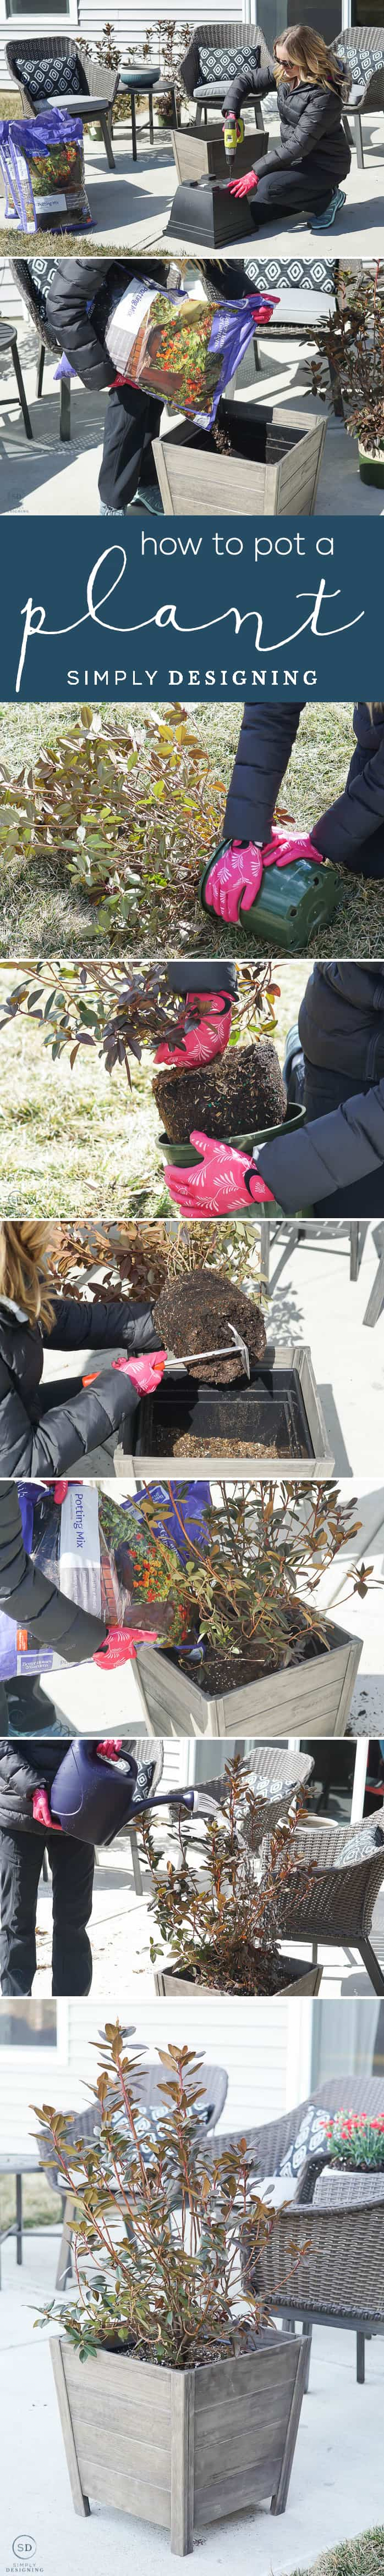 How to Pot a Plant in a large planter